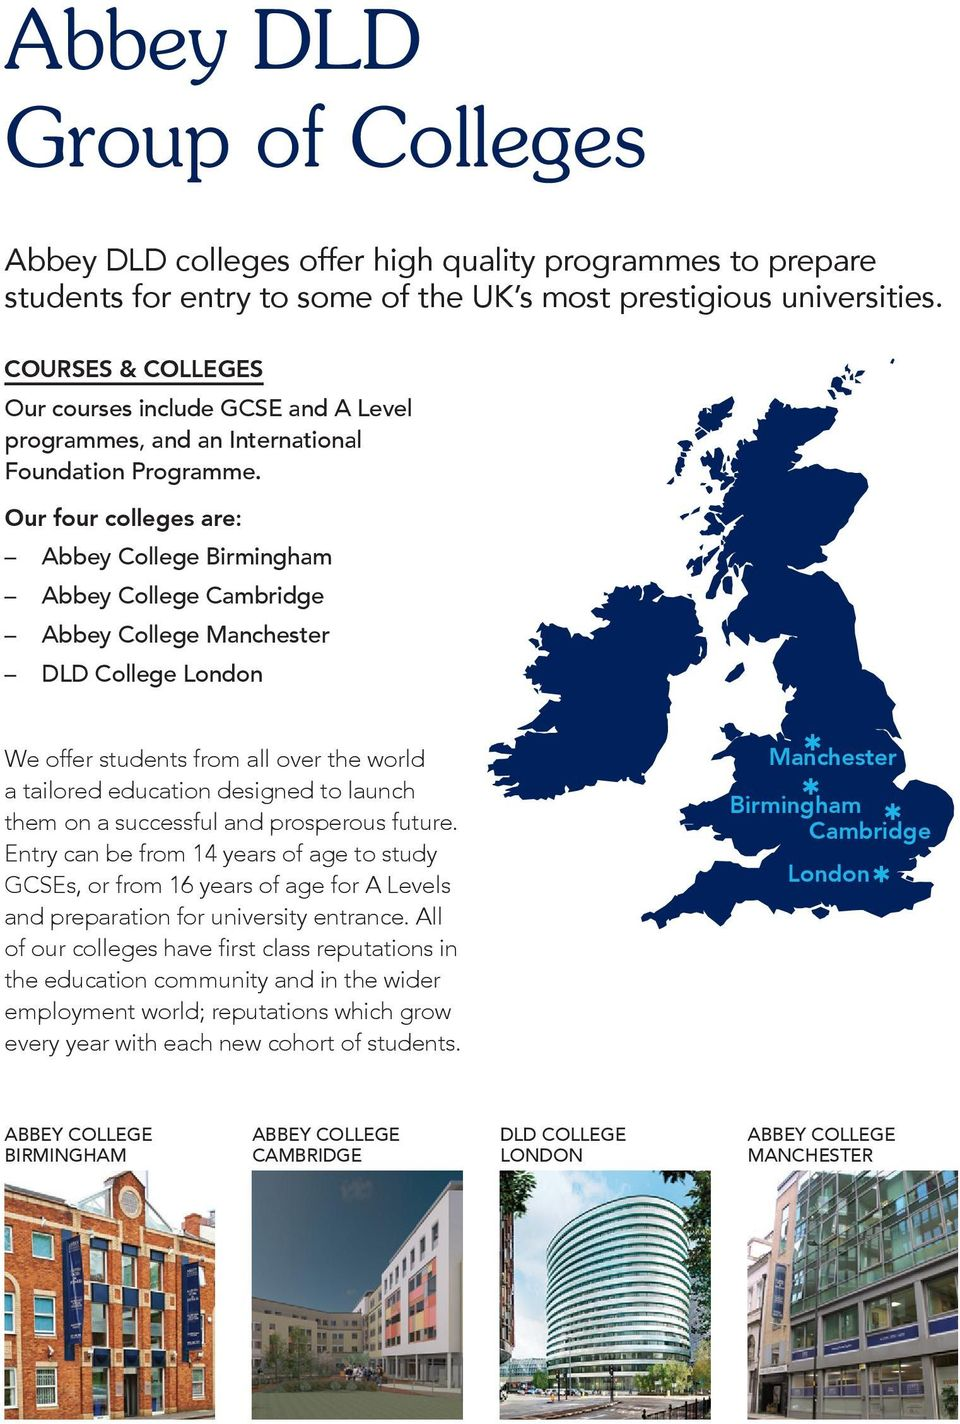 Our four colleges are: Abbey College Birmingham Abbey College Cambridge Abbey College Manchester DLD College London We offer students from all over the world a tailored education designed to launch